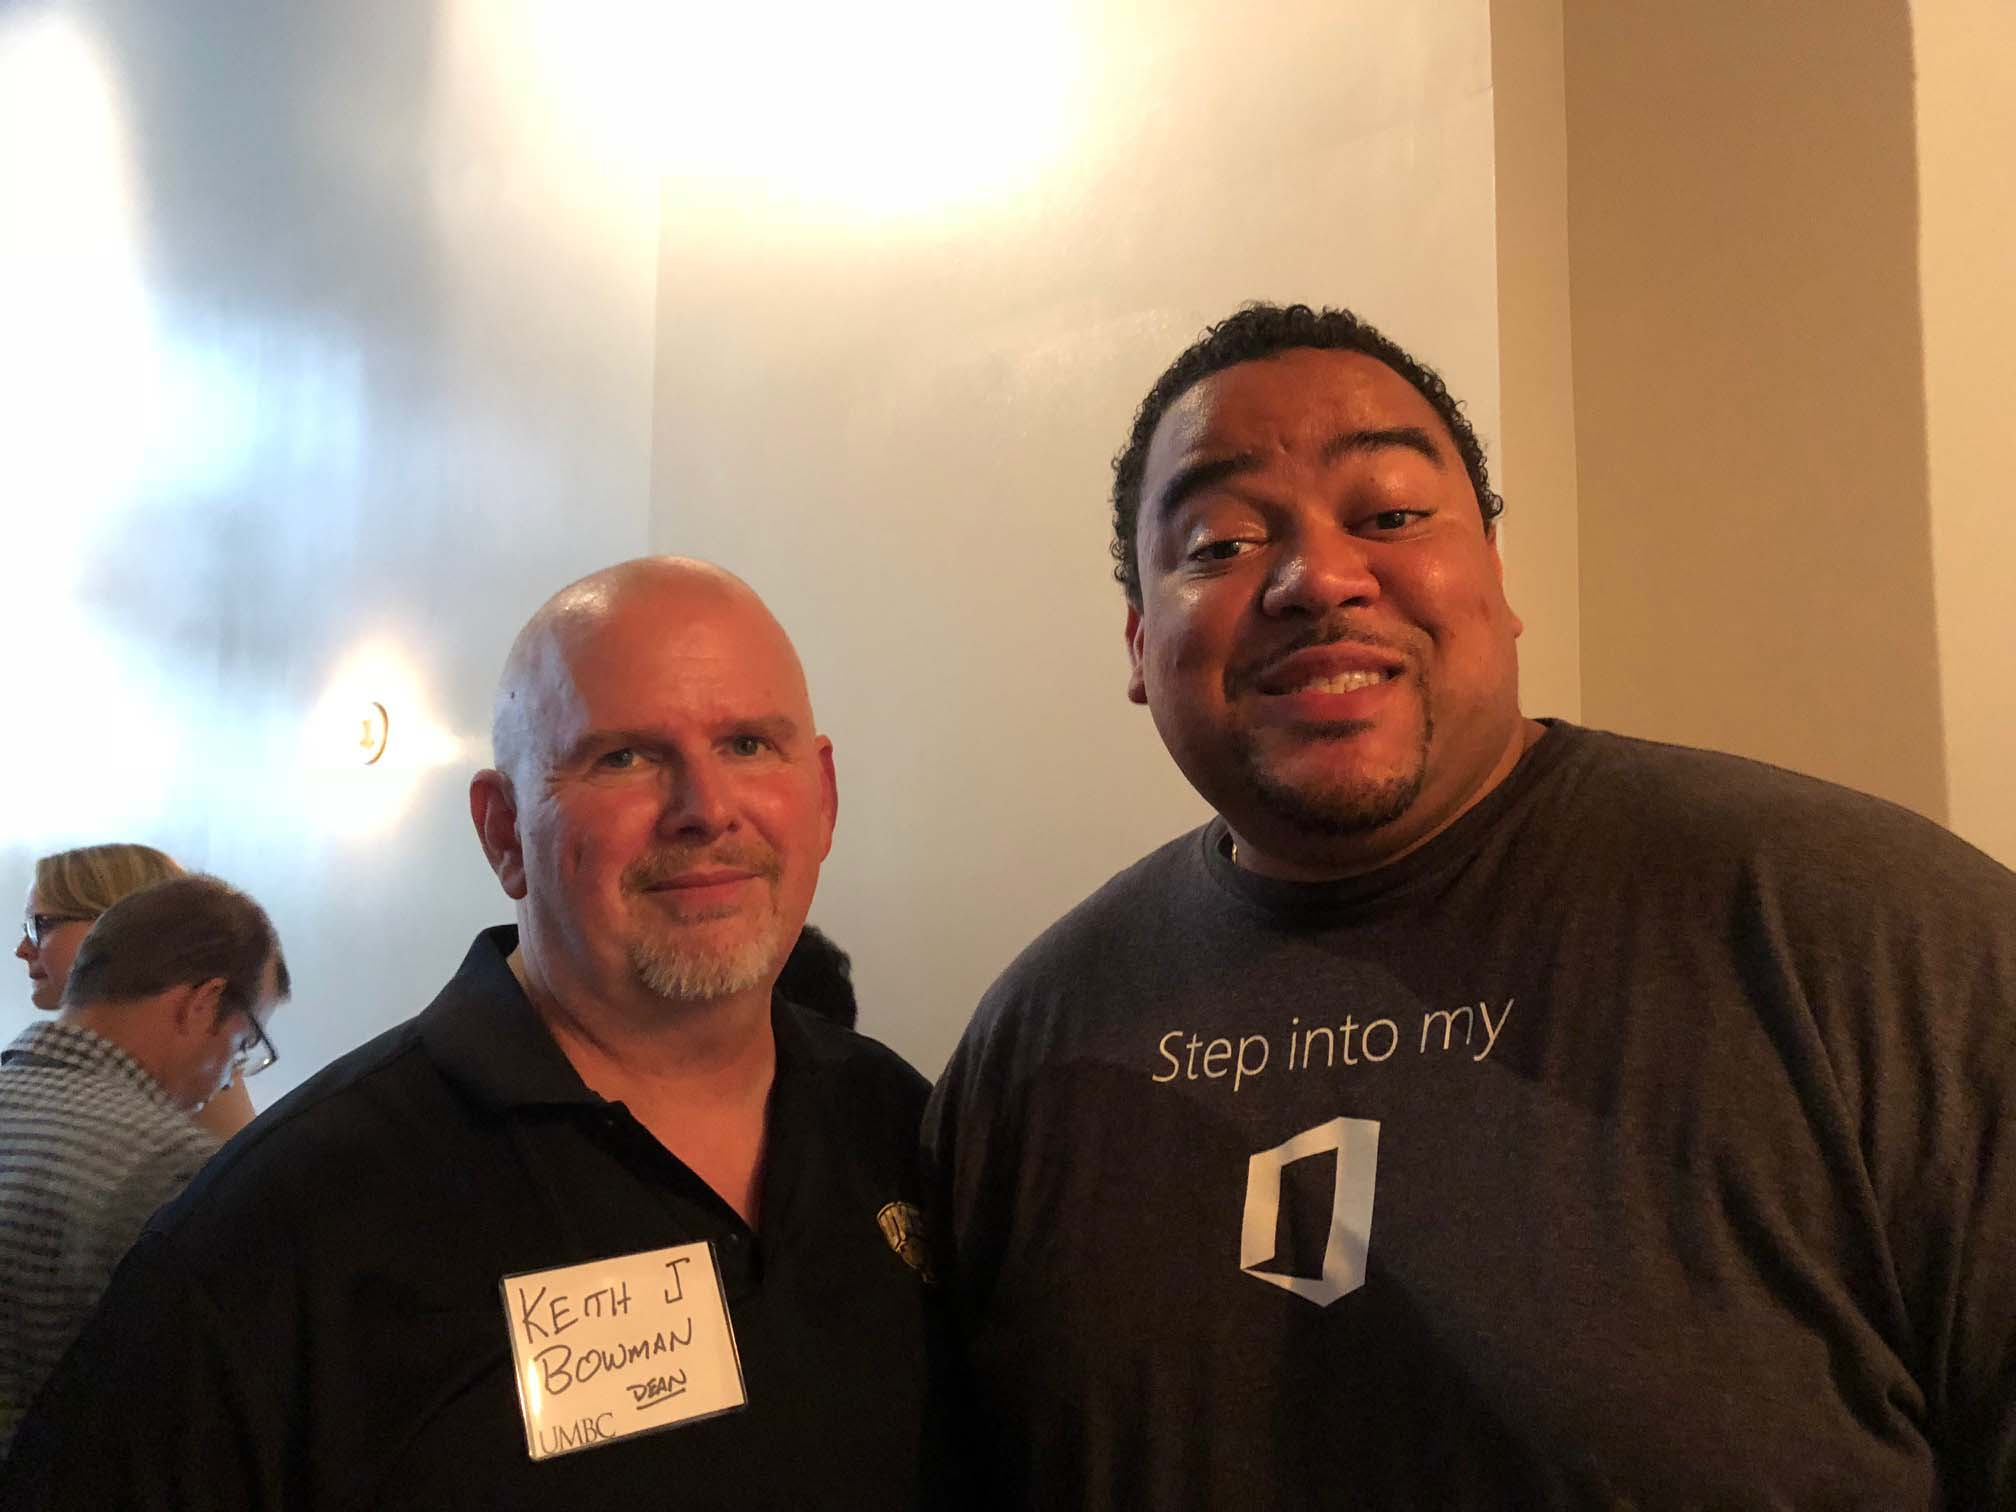 Keith Bowman and other pose together at Seattle Networking